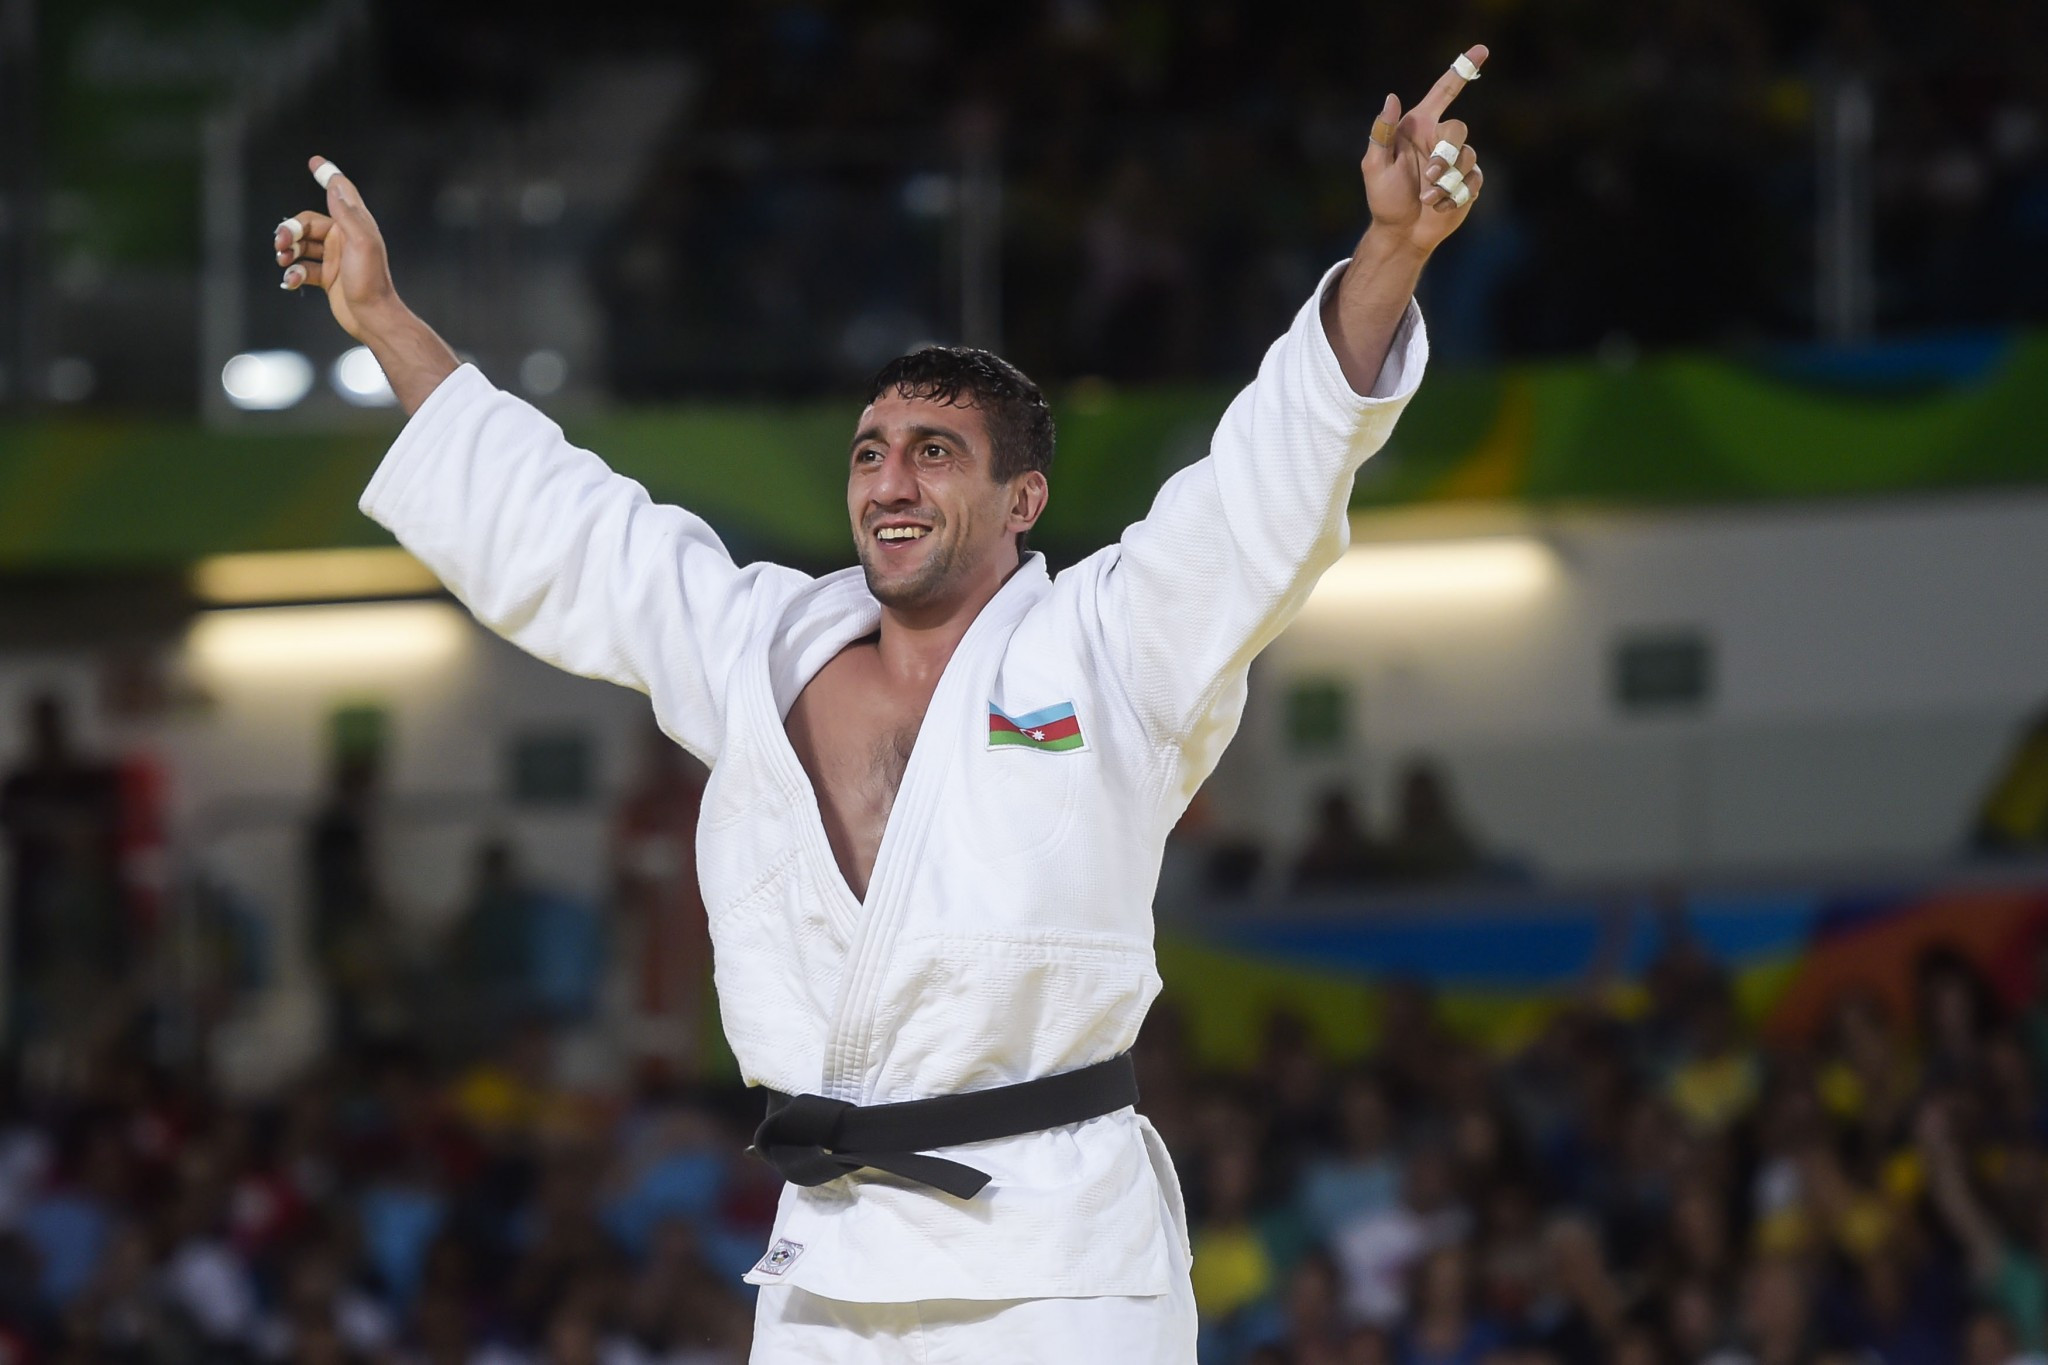 Six Rio 2016 medallists head field for IBSA European Judo Championships